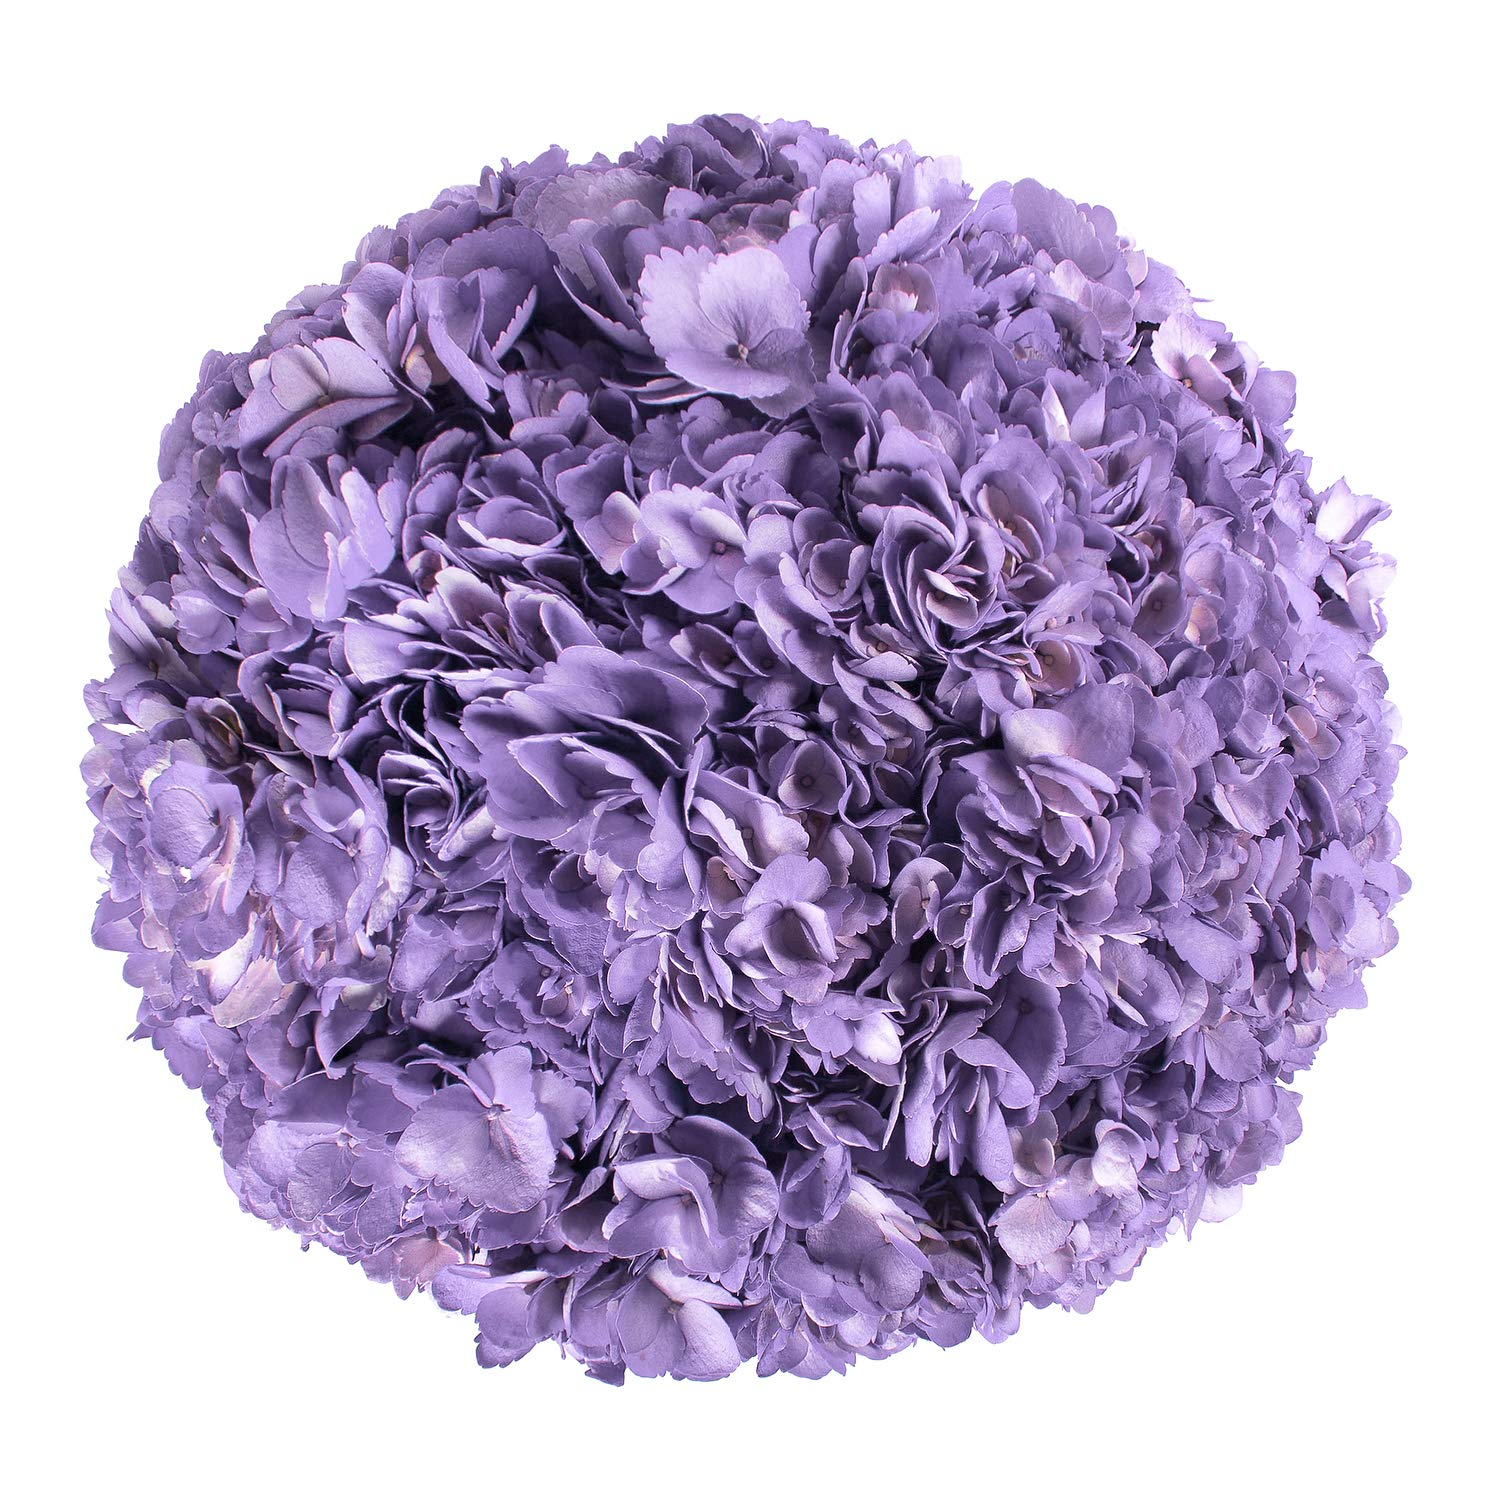 Farm Fresh Natural Painted Lavender Hydrangeas - Pack 15 by Bloomingmore (Image #2)